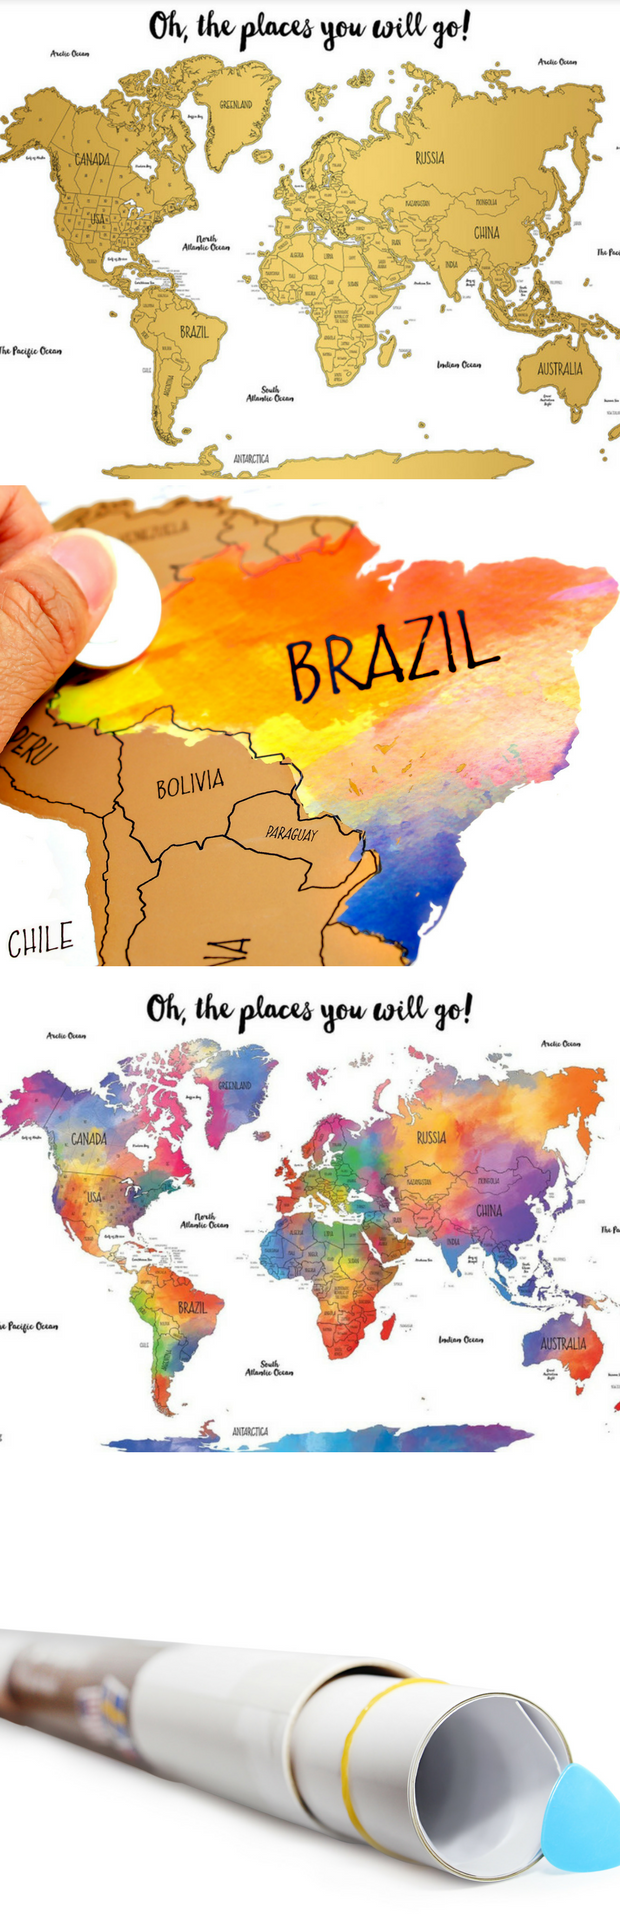 Free two day shipping included watercolor world scratch off map a beautiful scratch off world map to track your travels and plan your next destination gumiabroncs Image collections